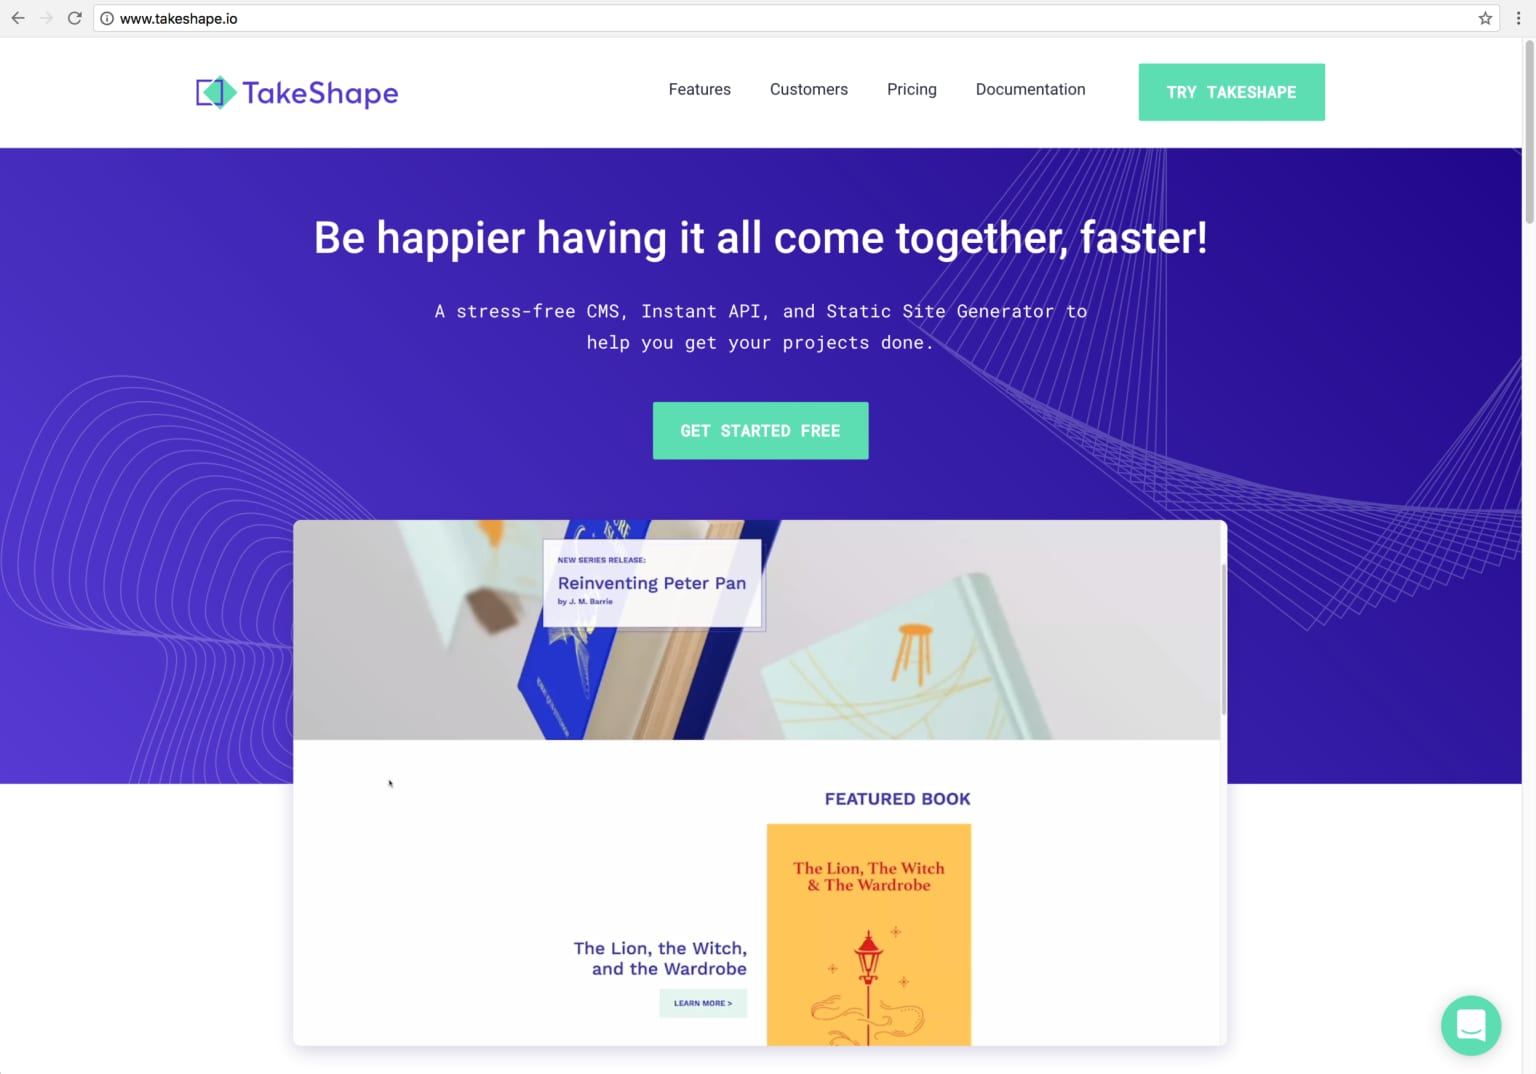 Takeshape Marketing Design